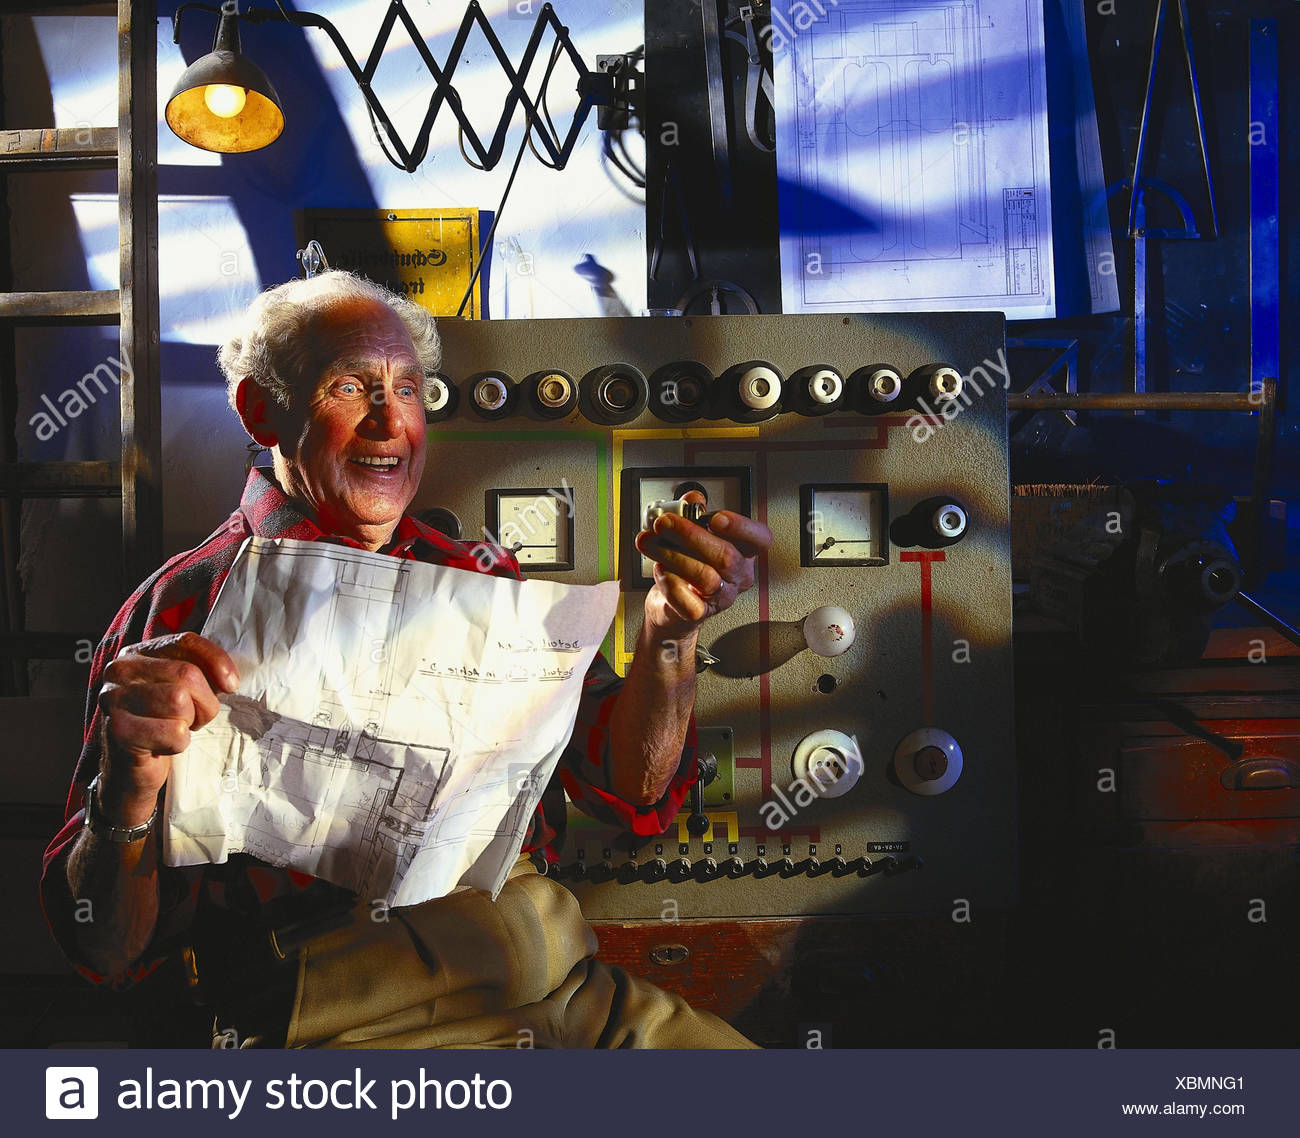 Fuse Boxes Senior Instructions Schematic Facial Play Pool Desperation Inside Backups Electricity Current Supply Substitute Exchange